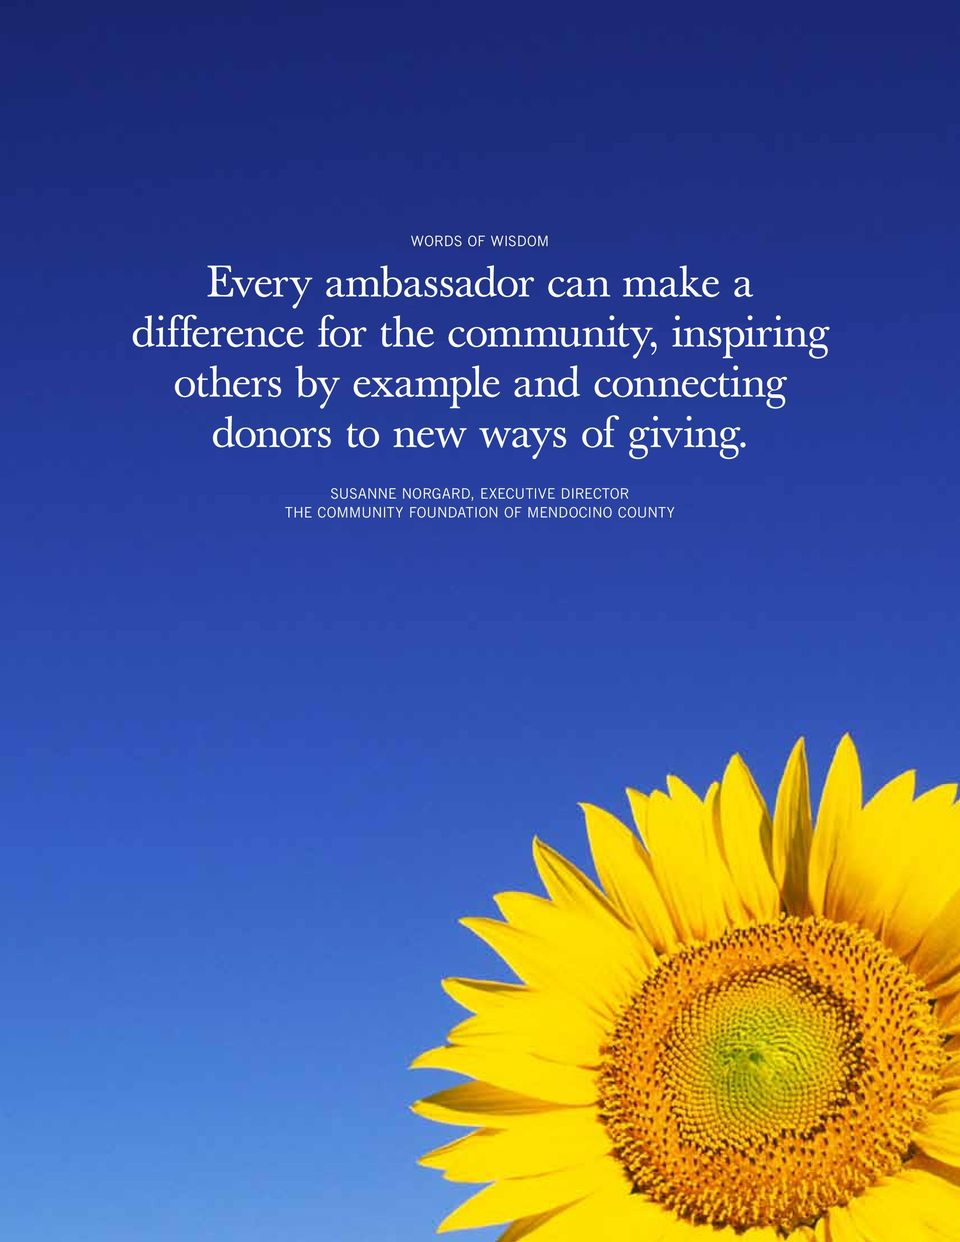 new ways of giving.